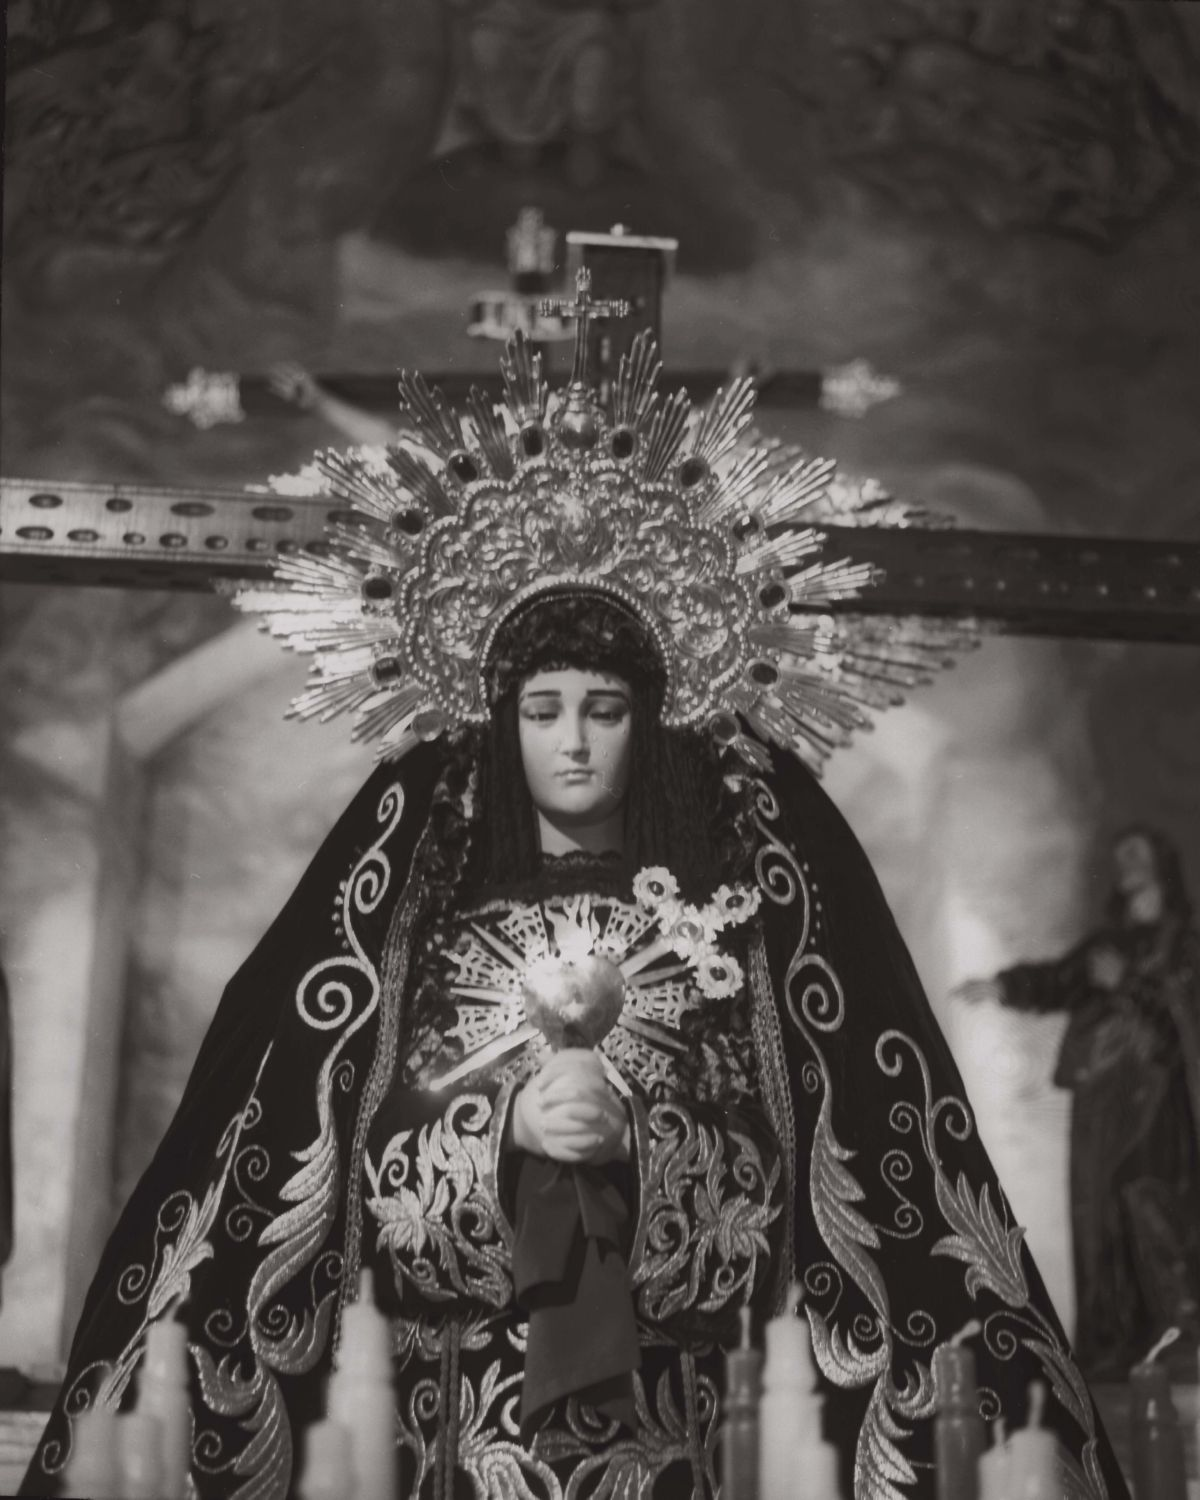 Virgin of the pains in La Veracruz church artwork by Juan Borja - art listed for sale on Artplode